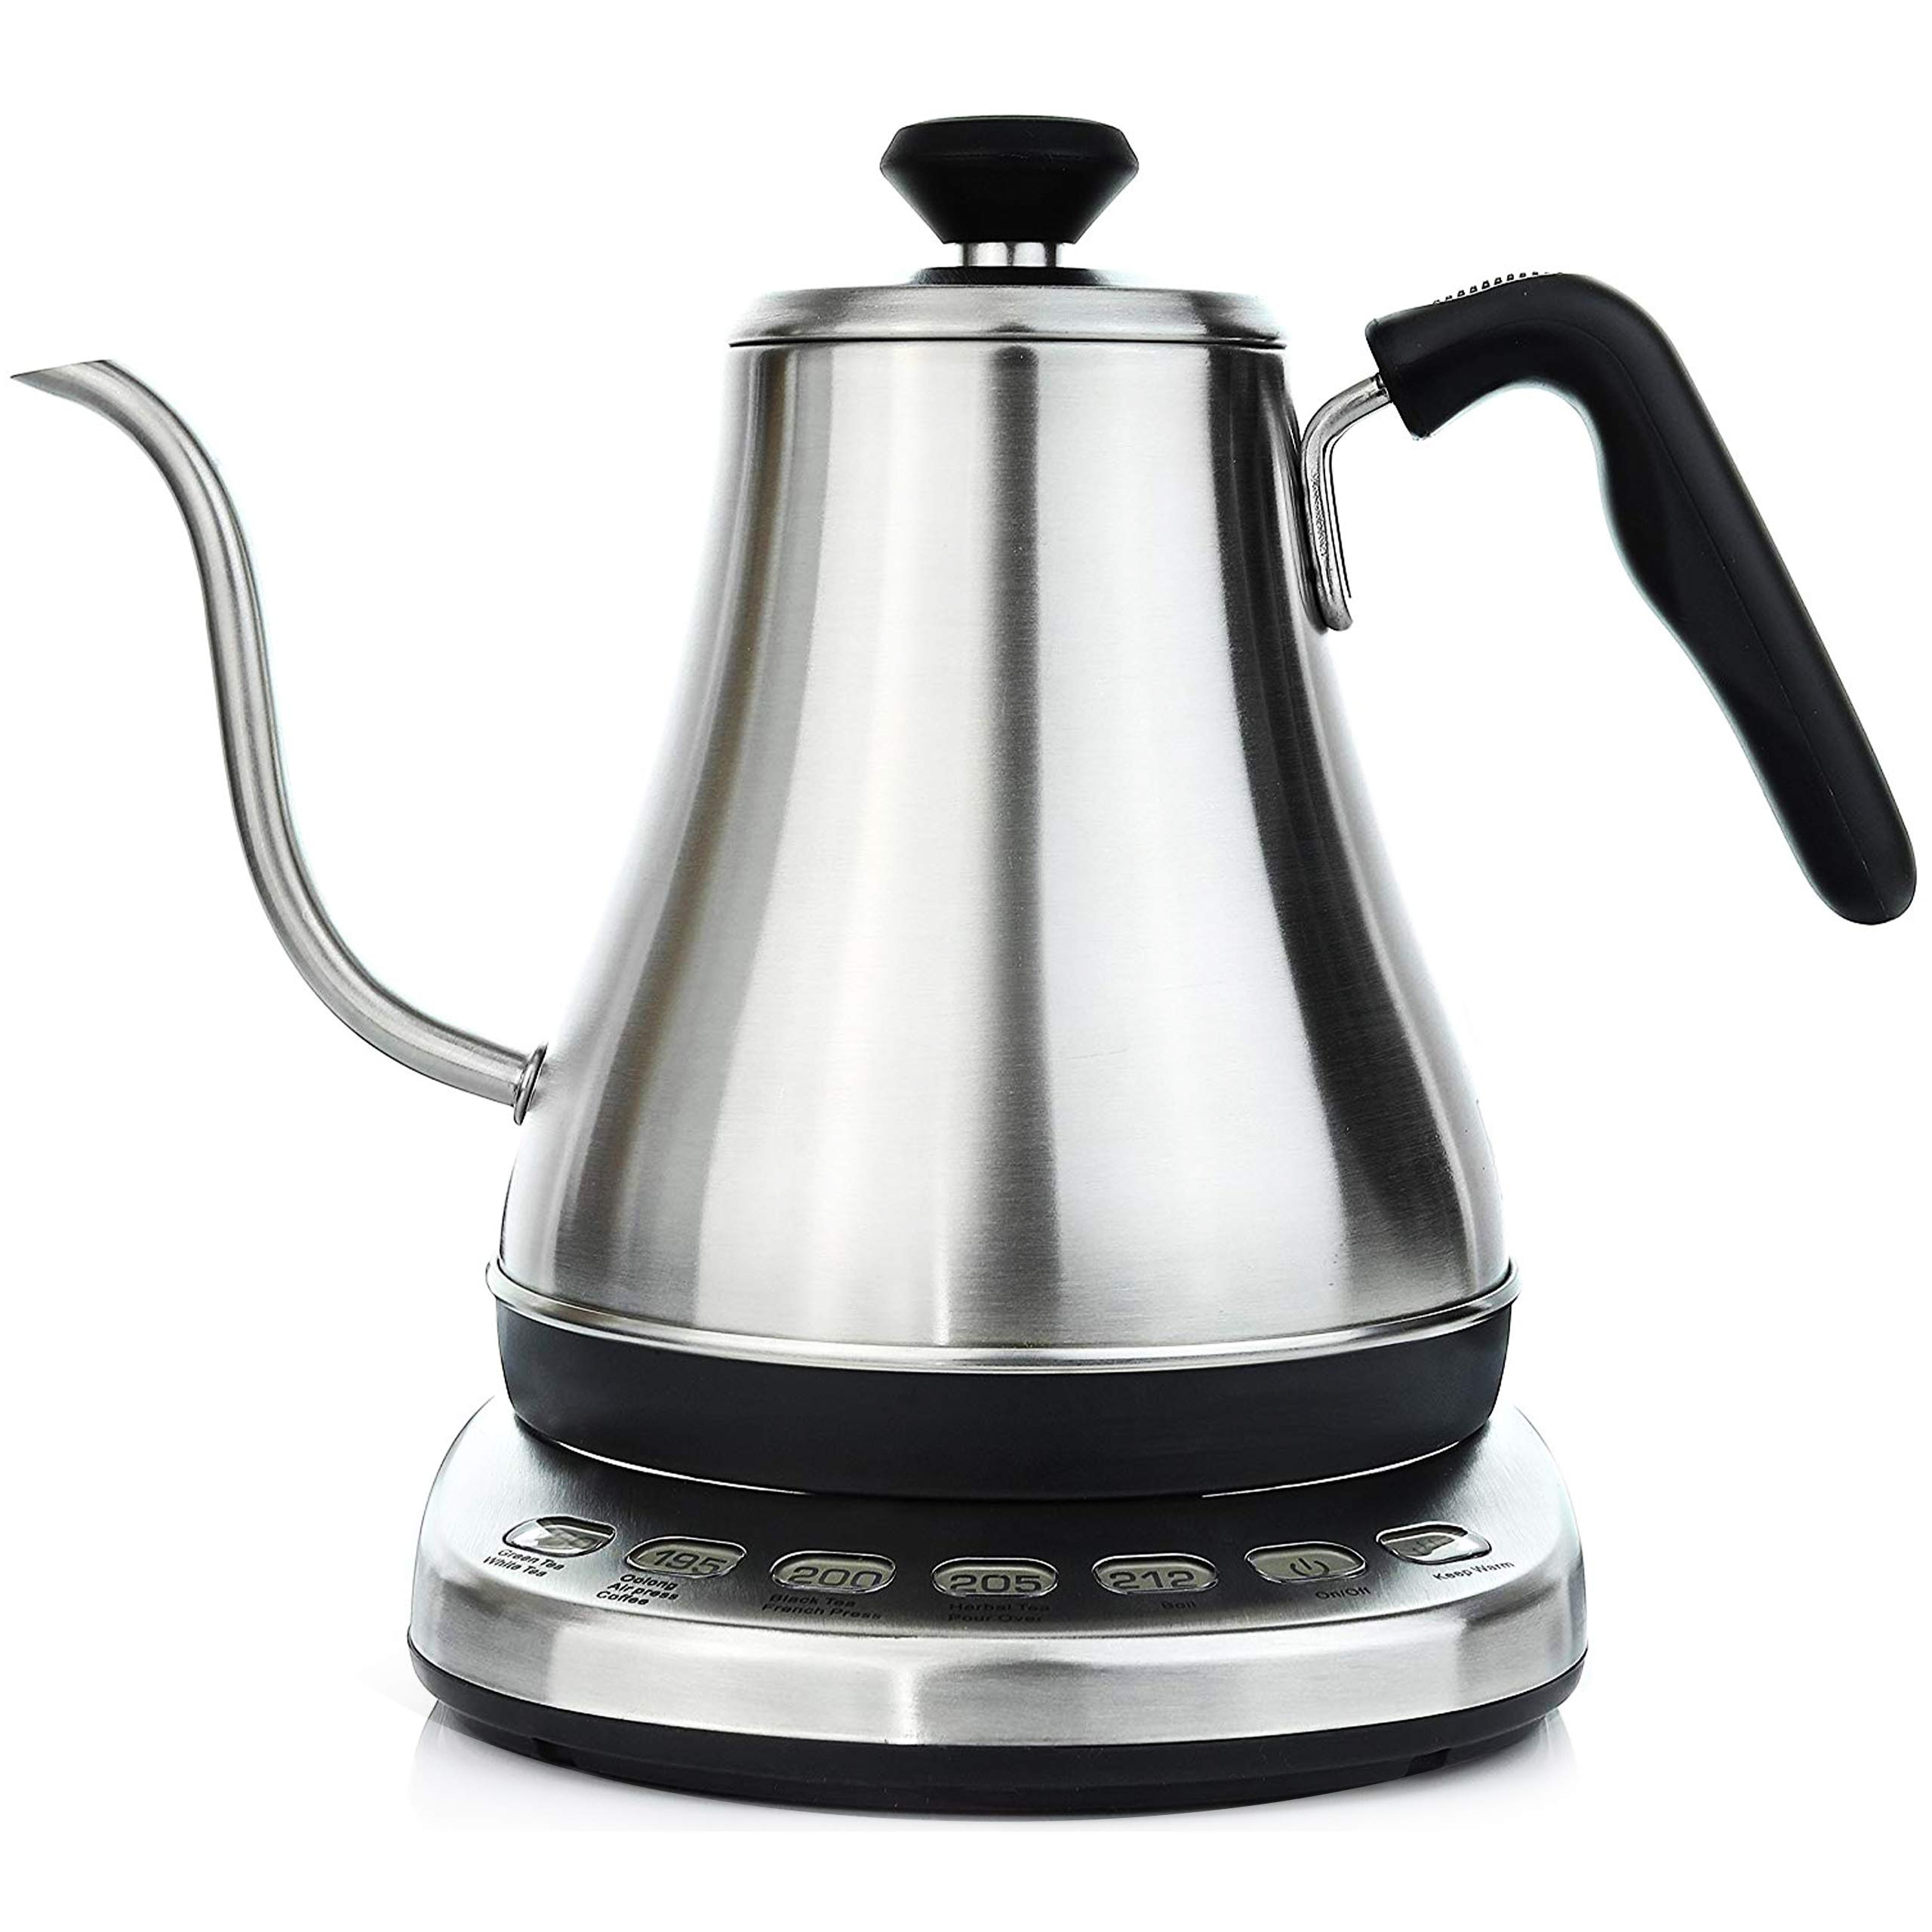 Gooseneck Electric Kettle with Temperature Control & Presets - 1L, Stainless Steel - Tea & Pour Over Coffee Kettle